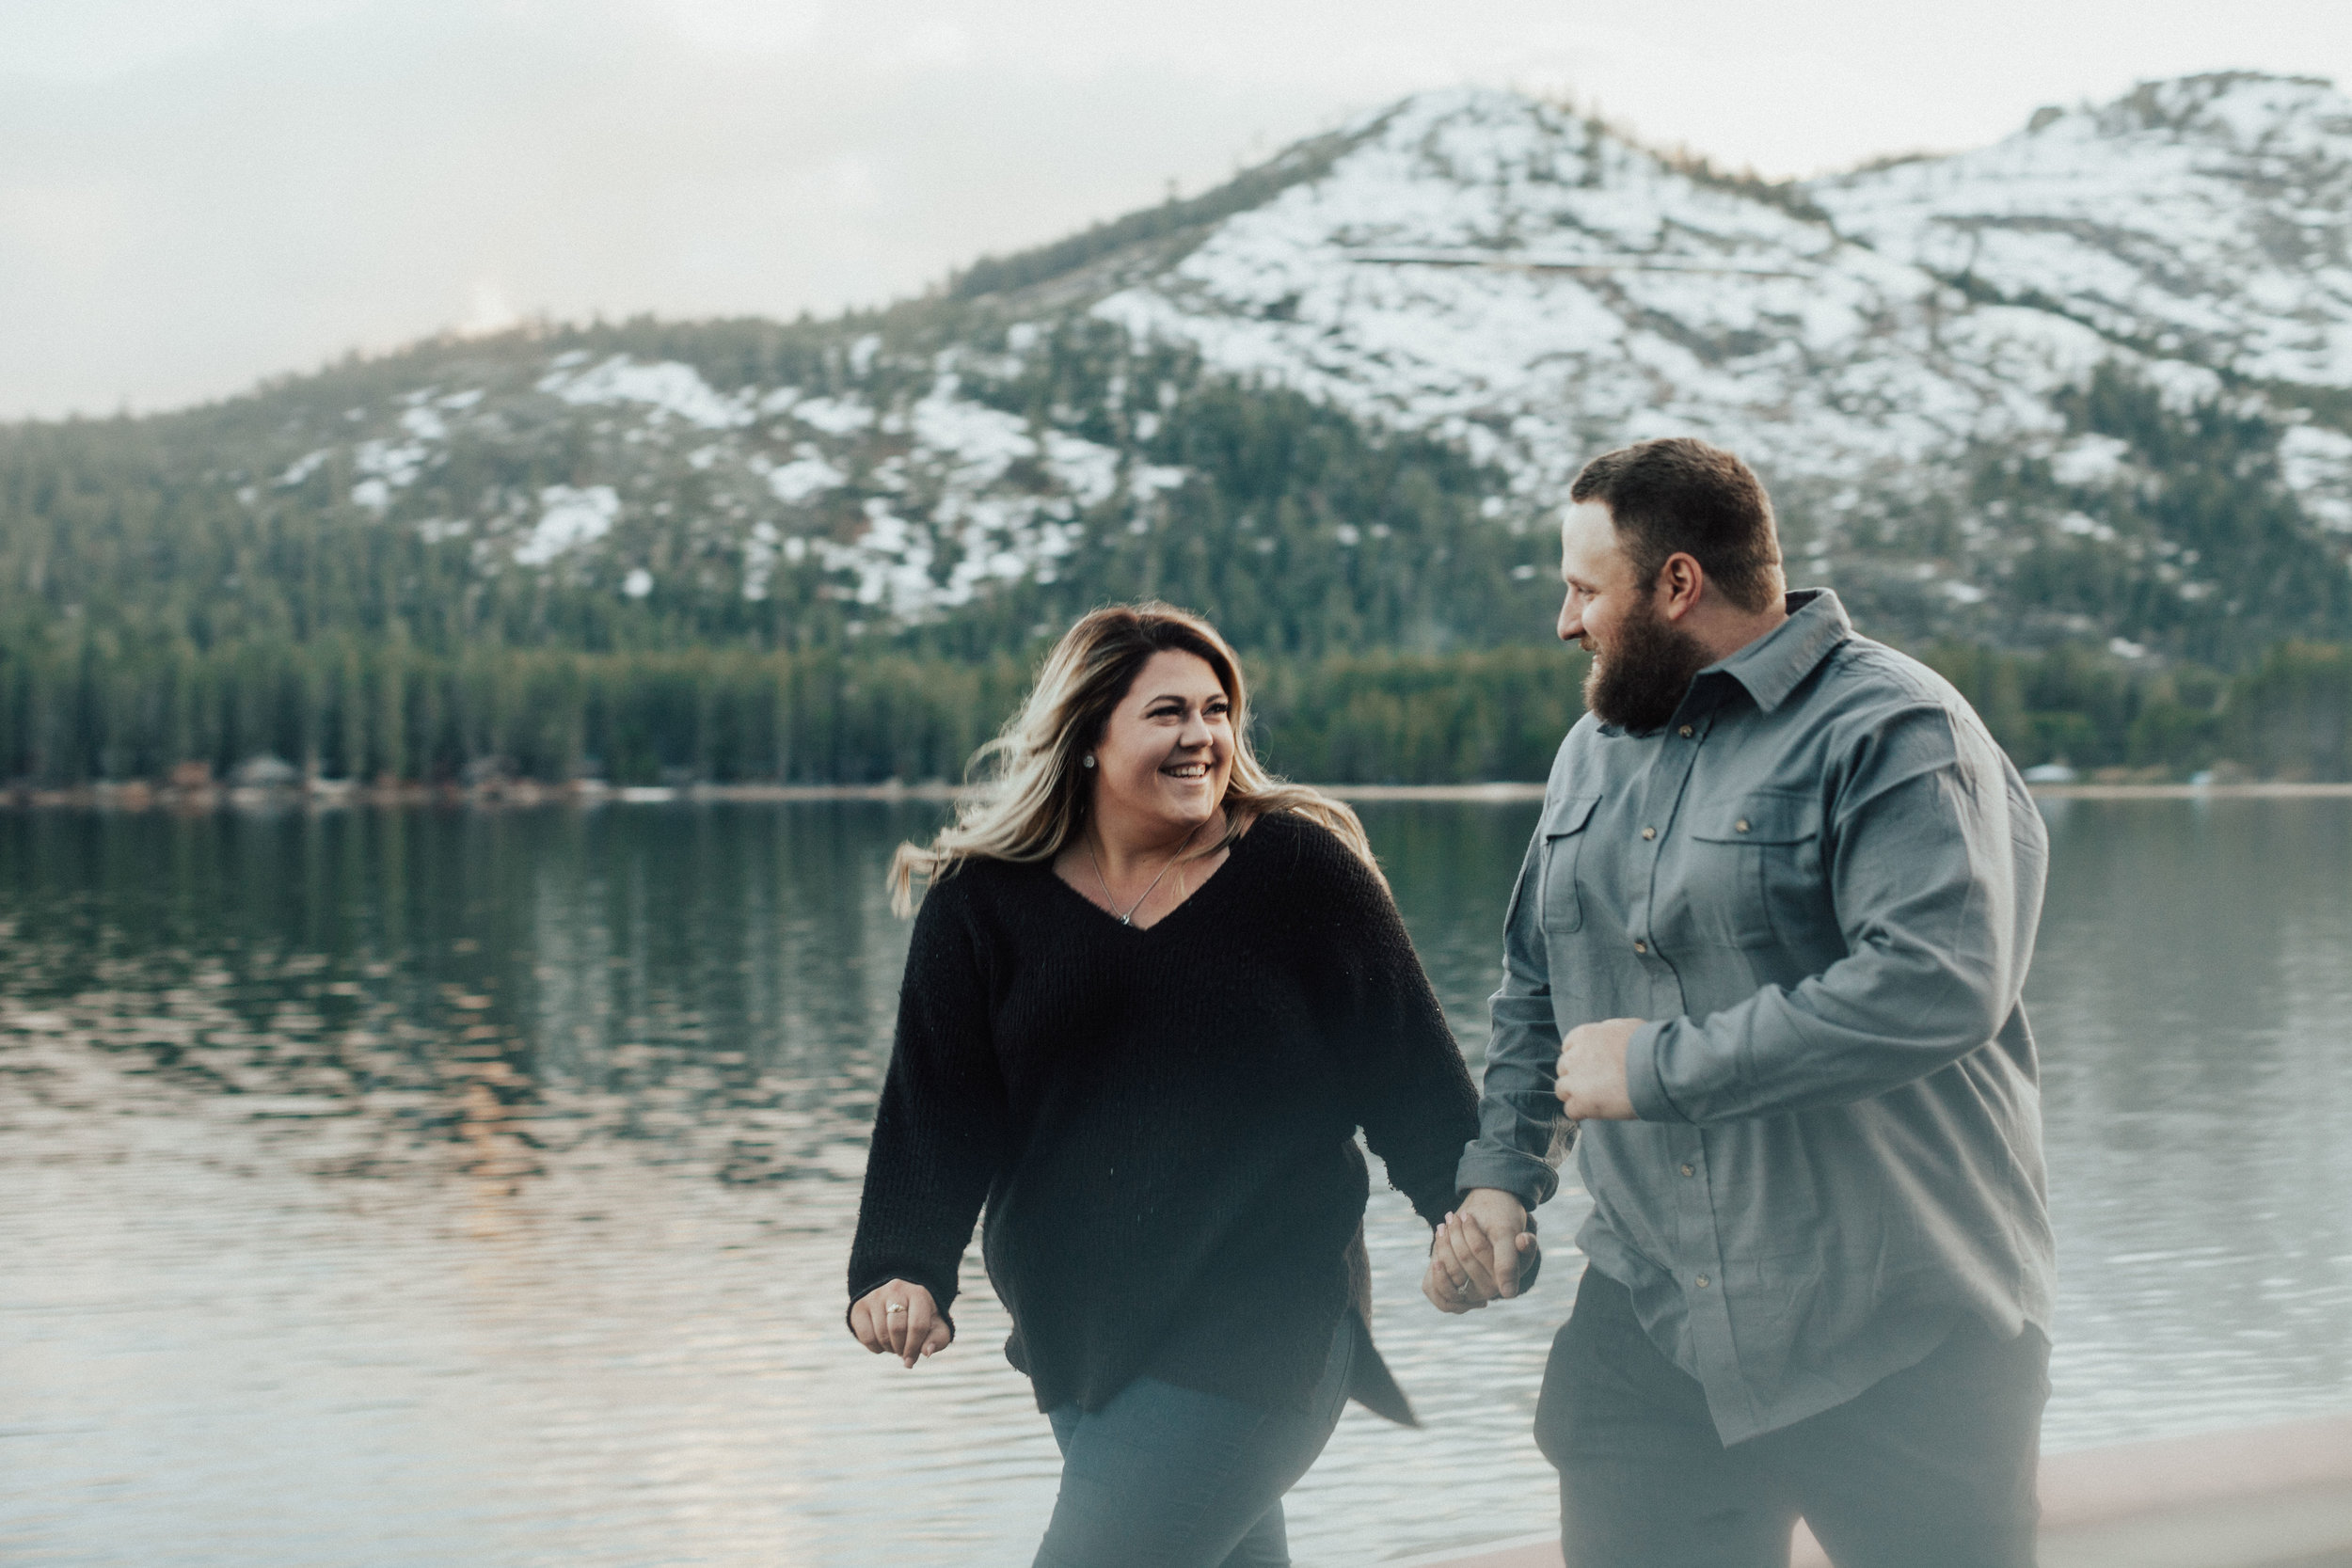 Lakeside lovers in the Donner Lake mountains.